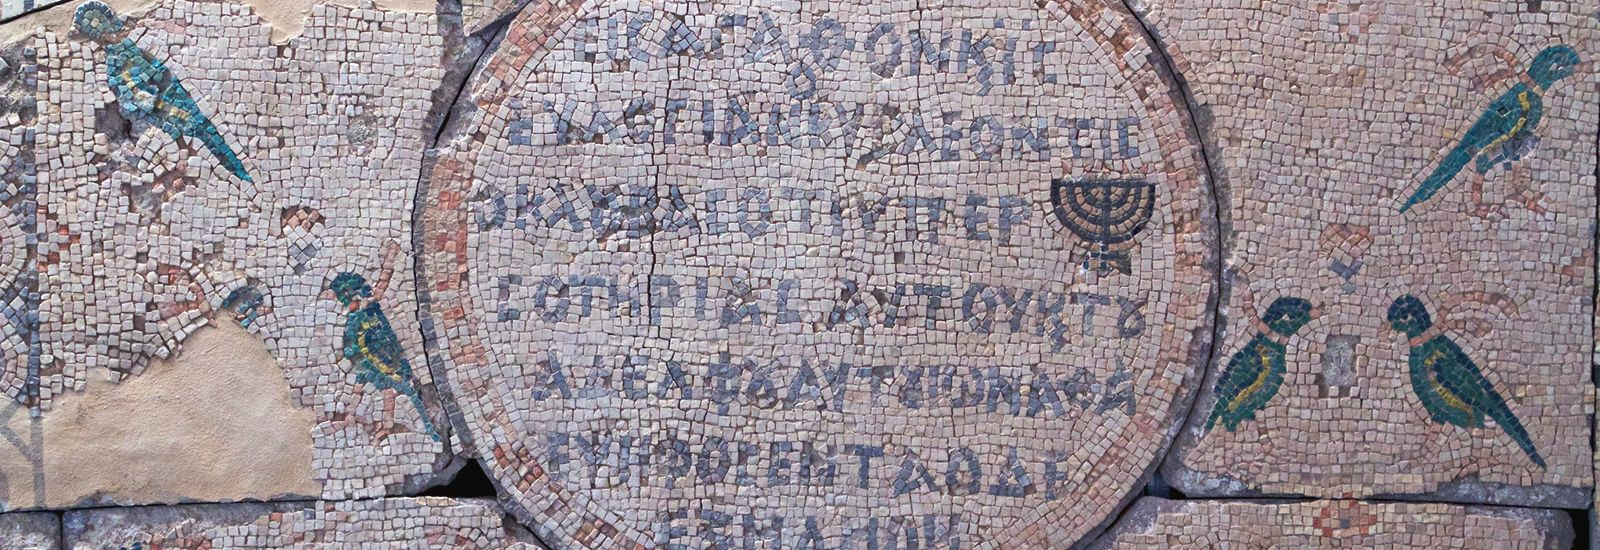 An old mosaic with birds and text